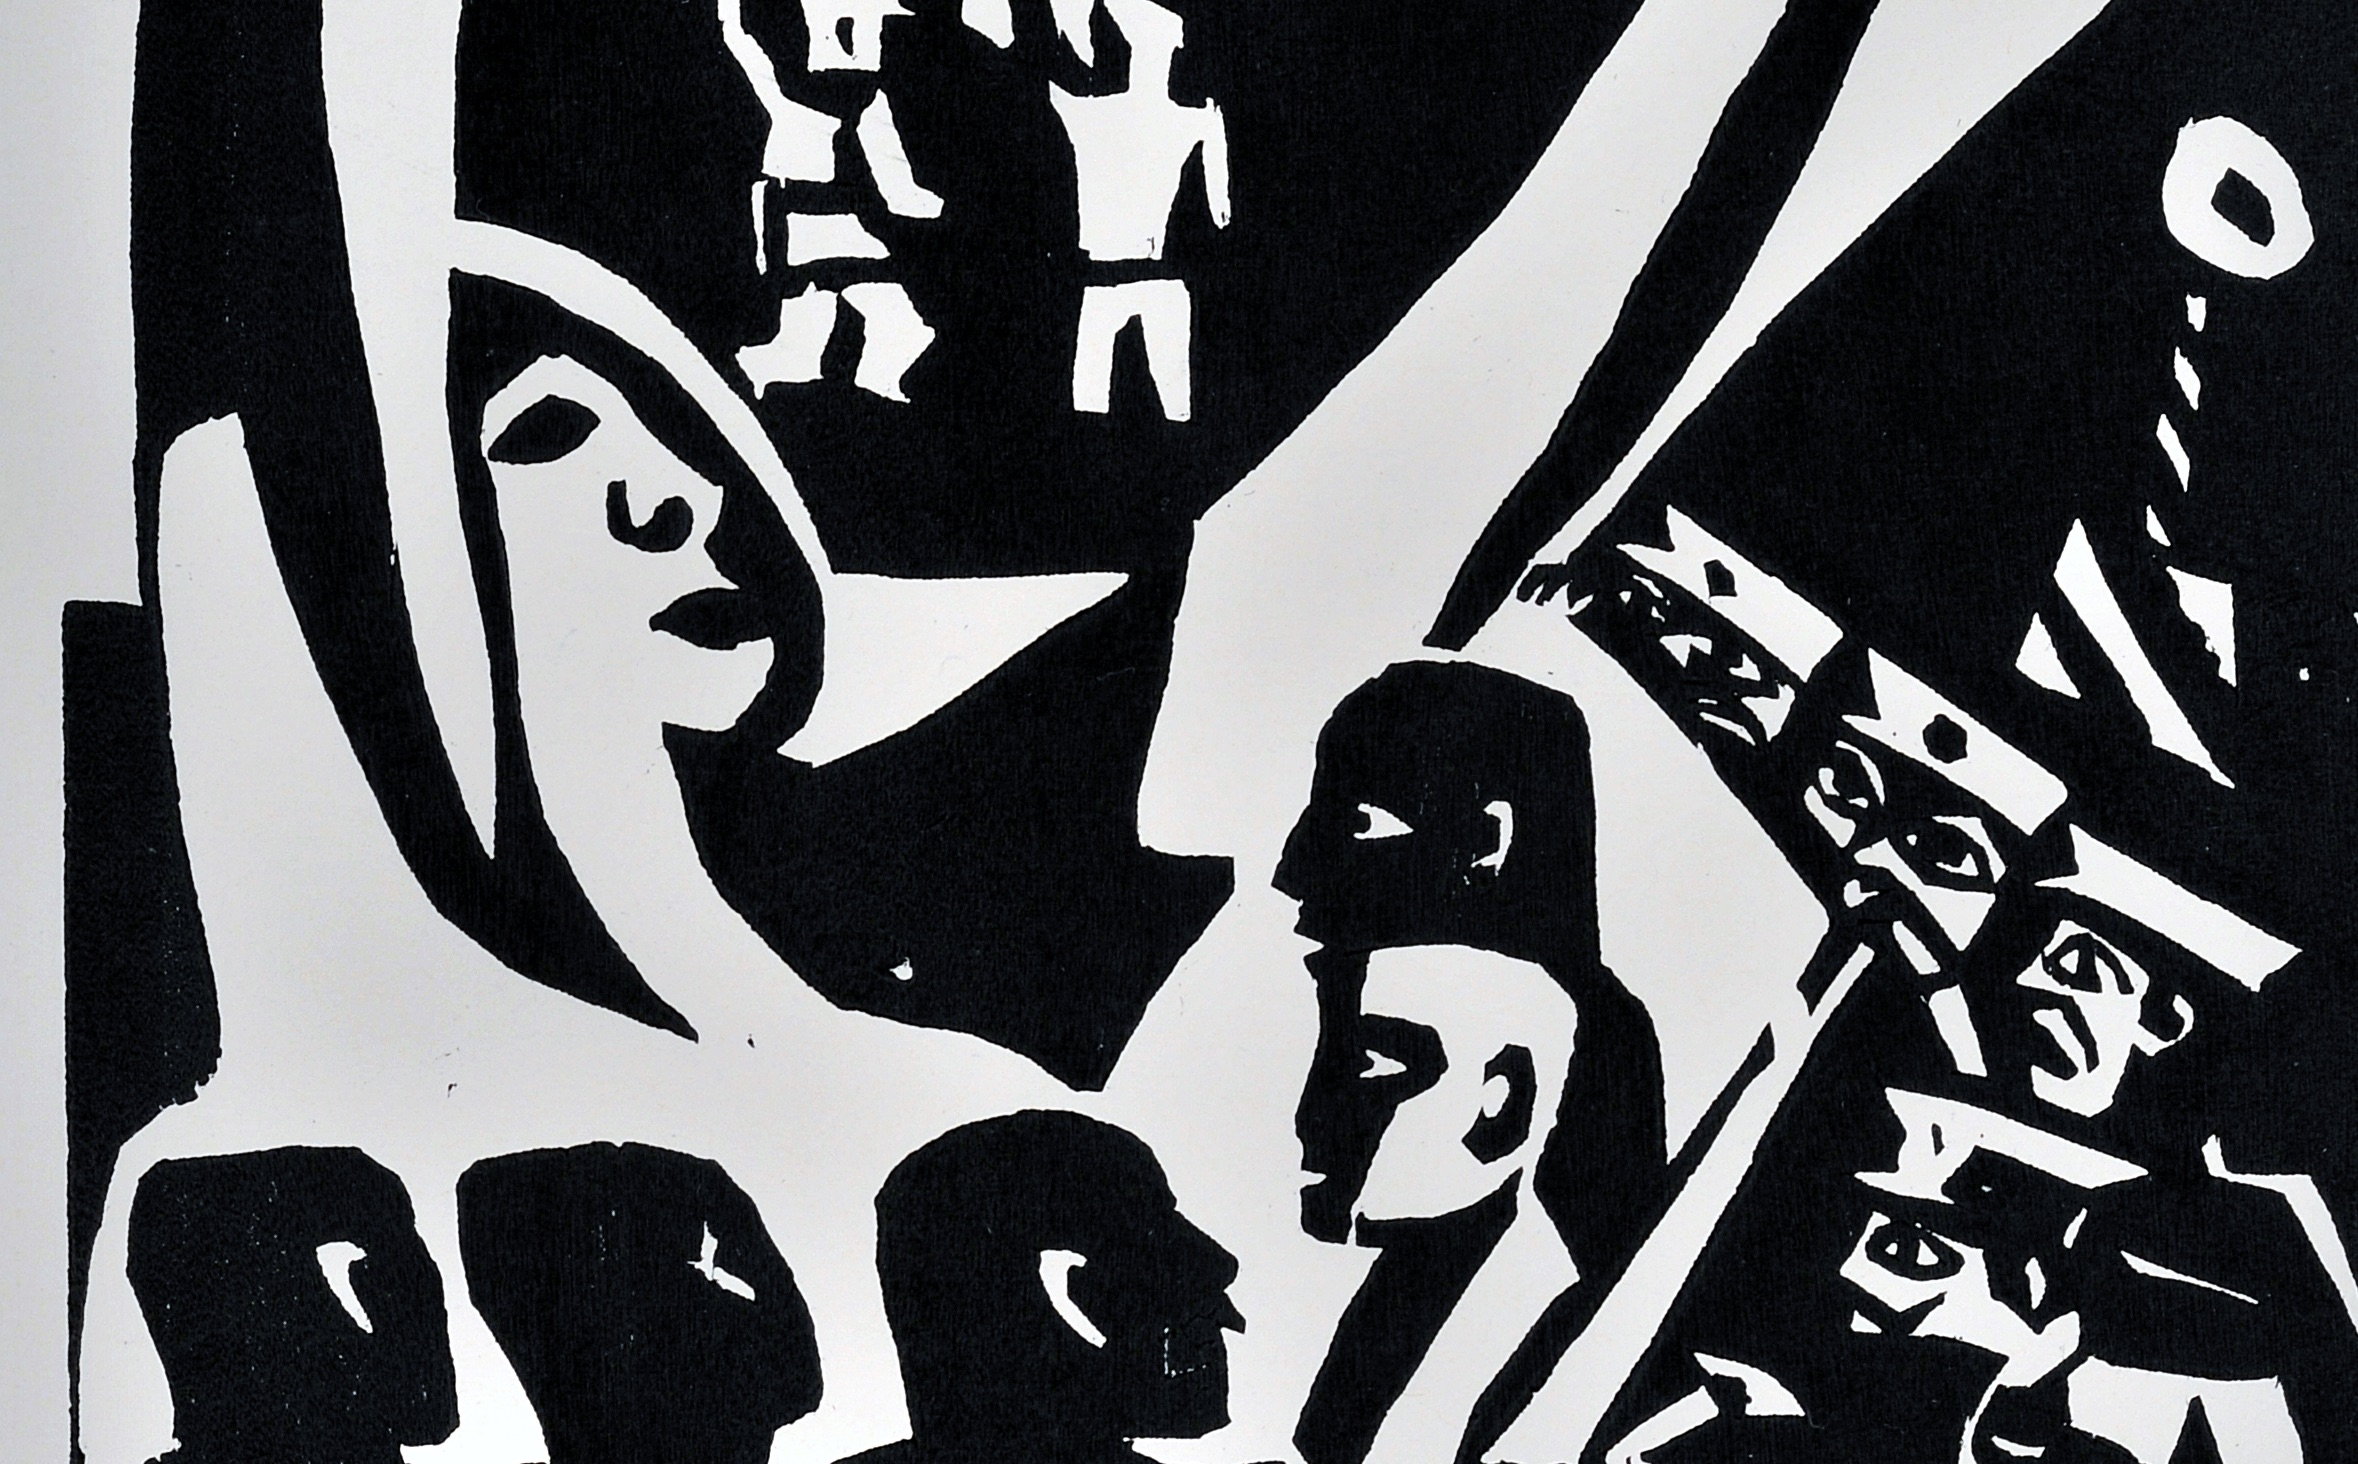 Simple figures in black ink formed into a dynamic composition